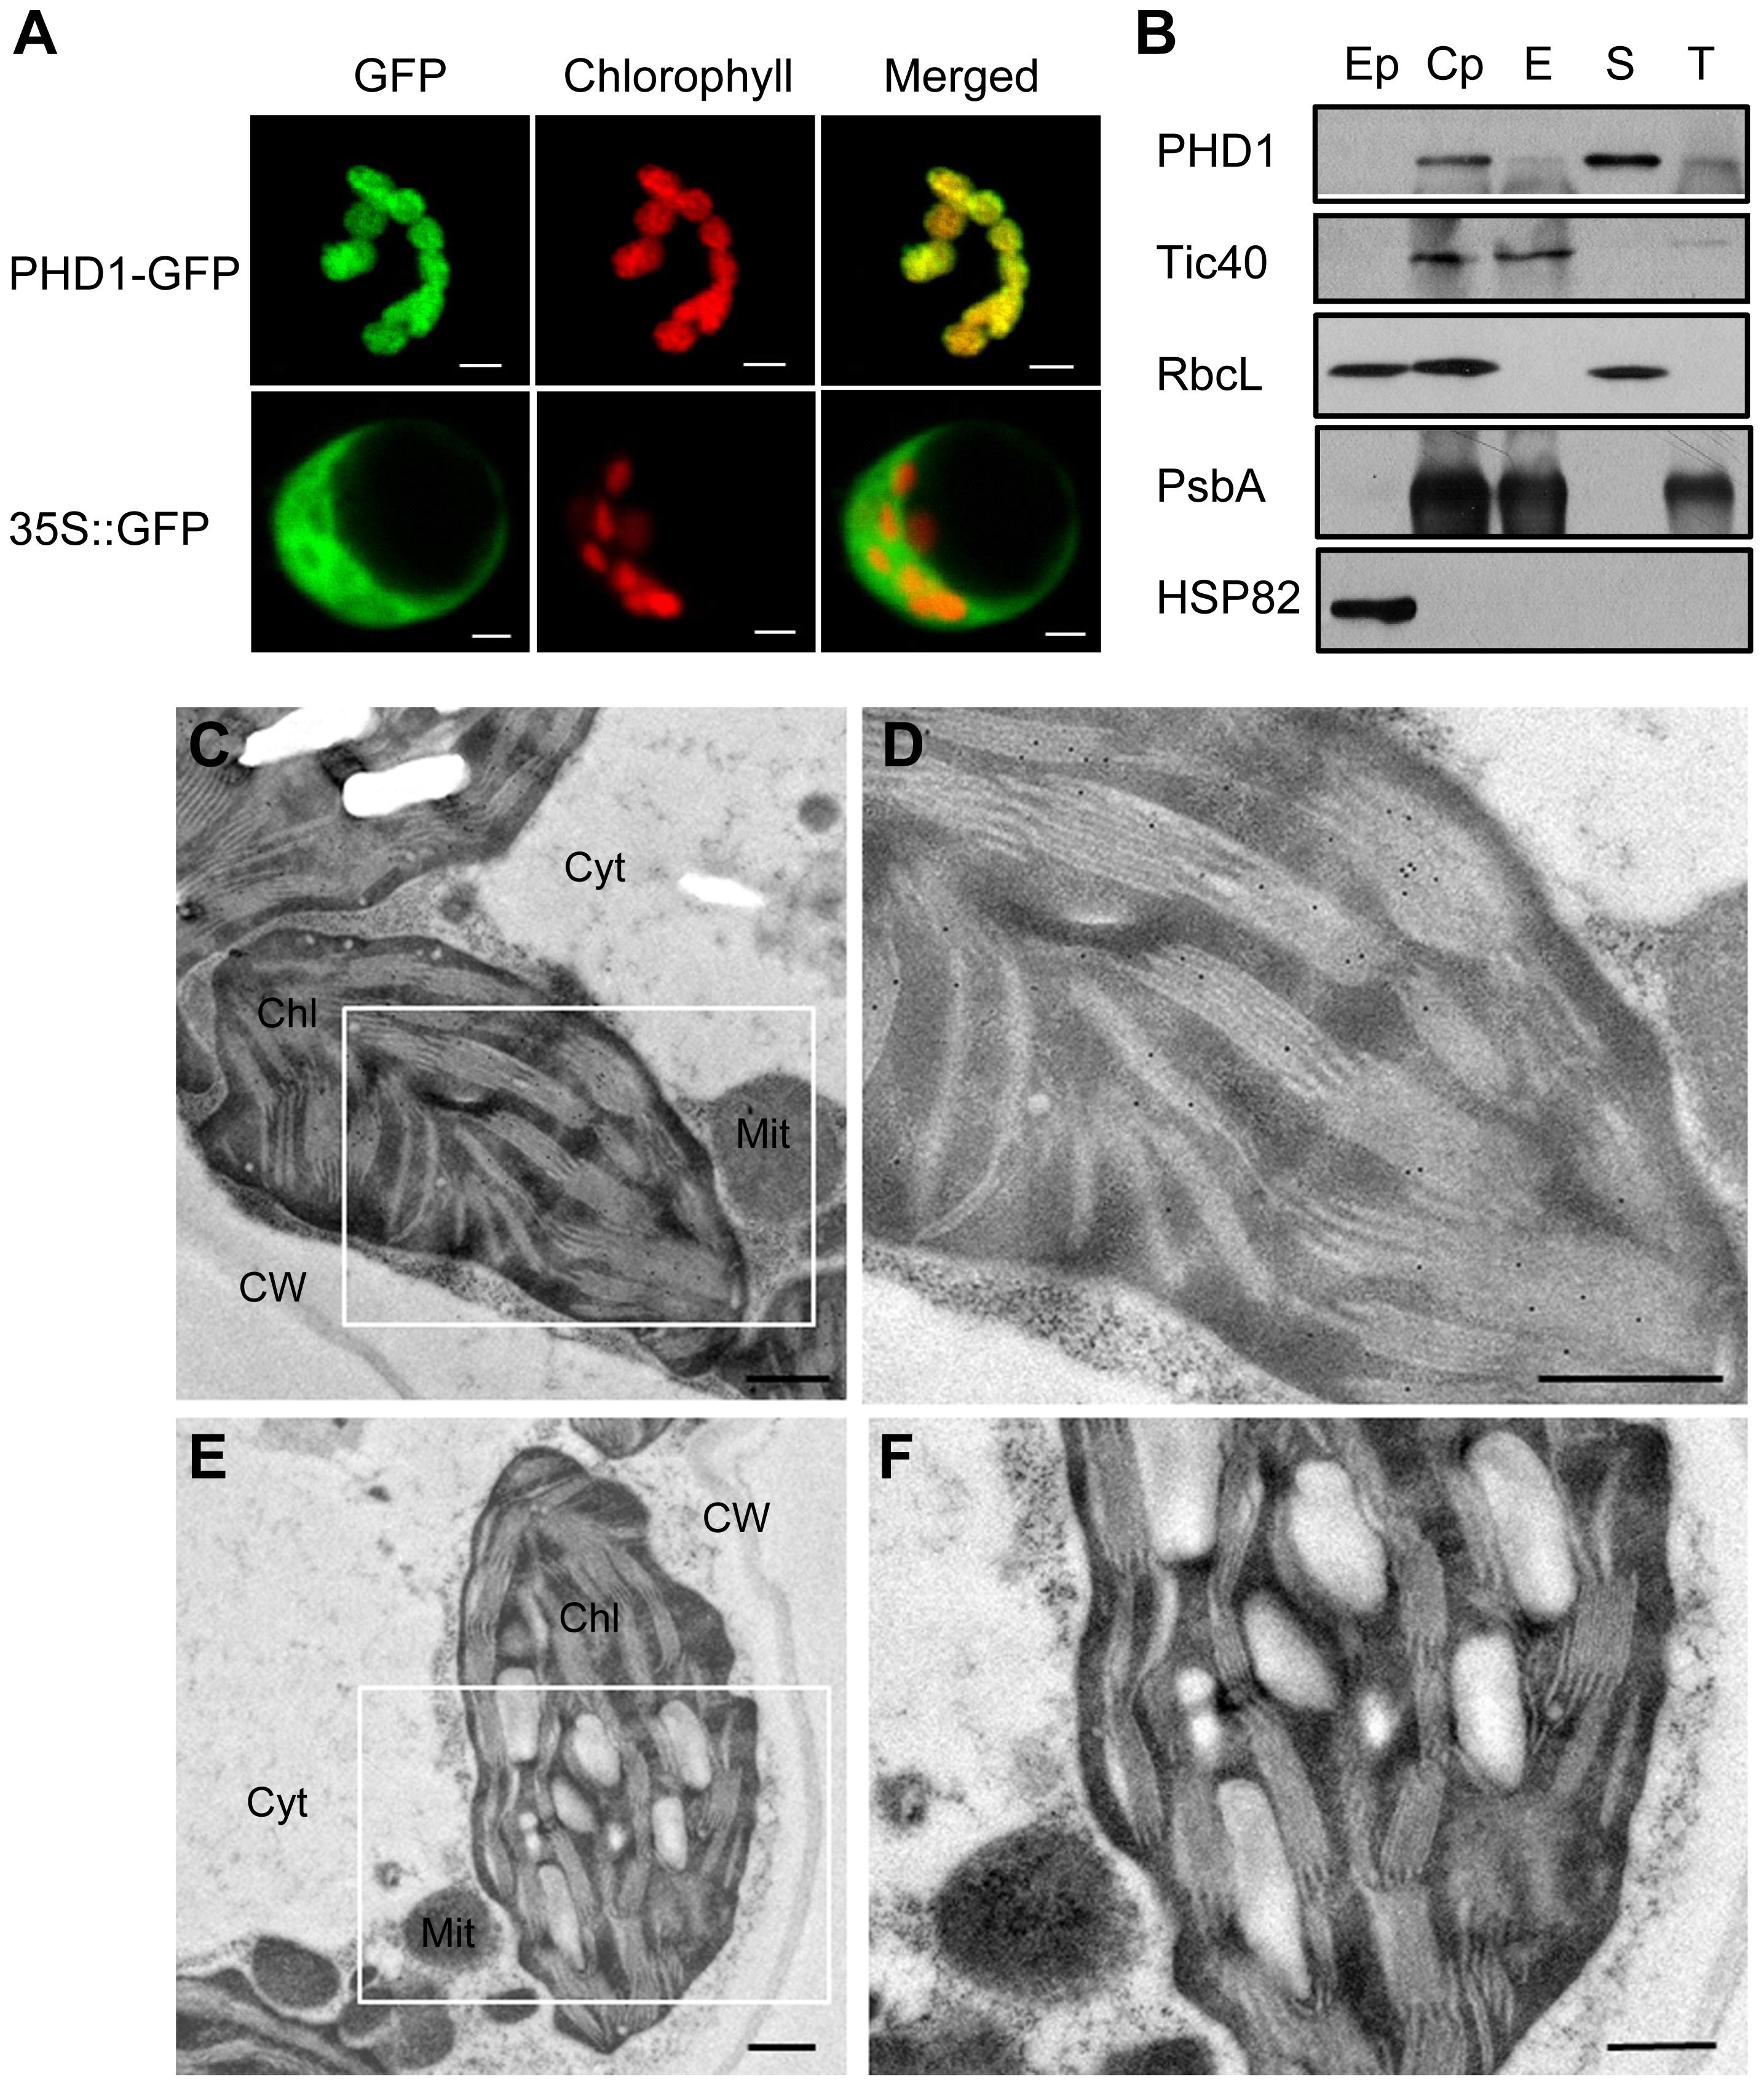 Subcellular localization of PHD1.